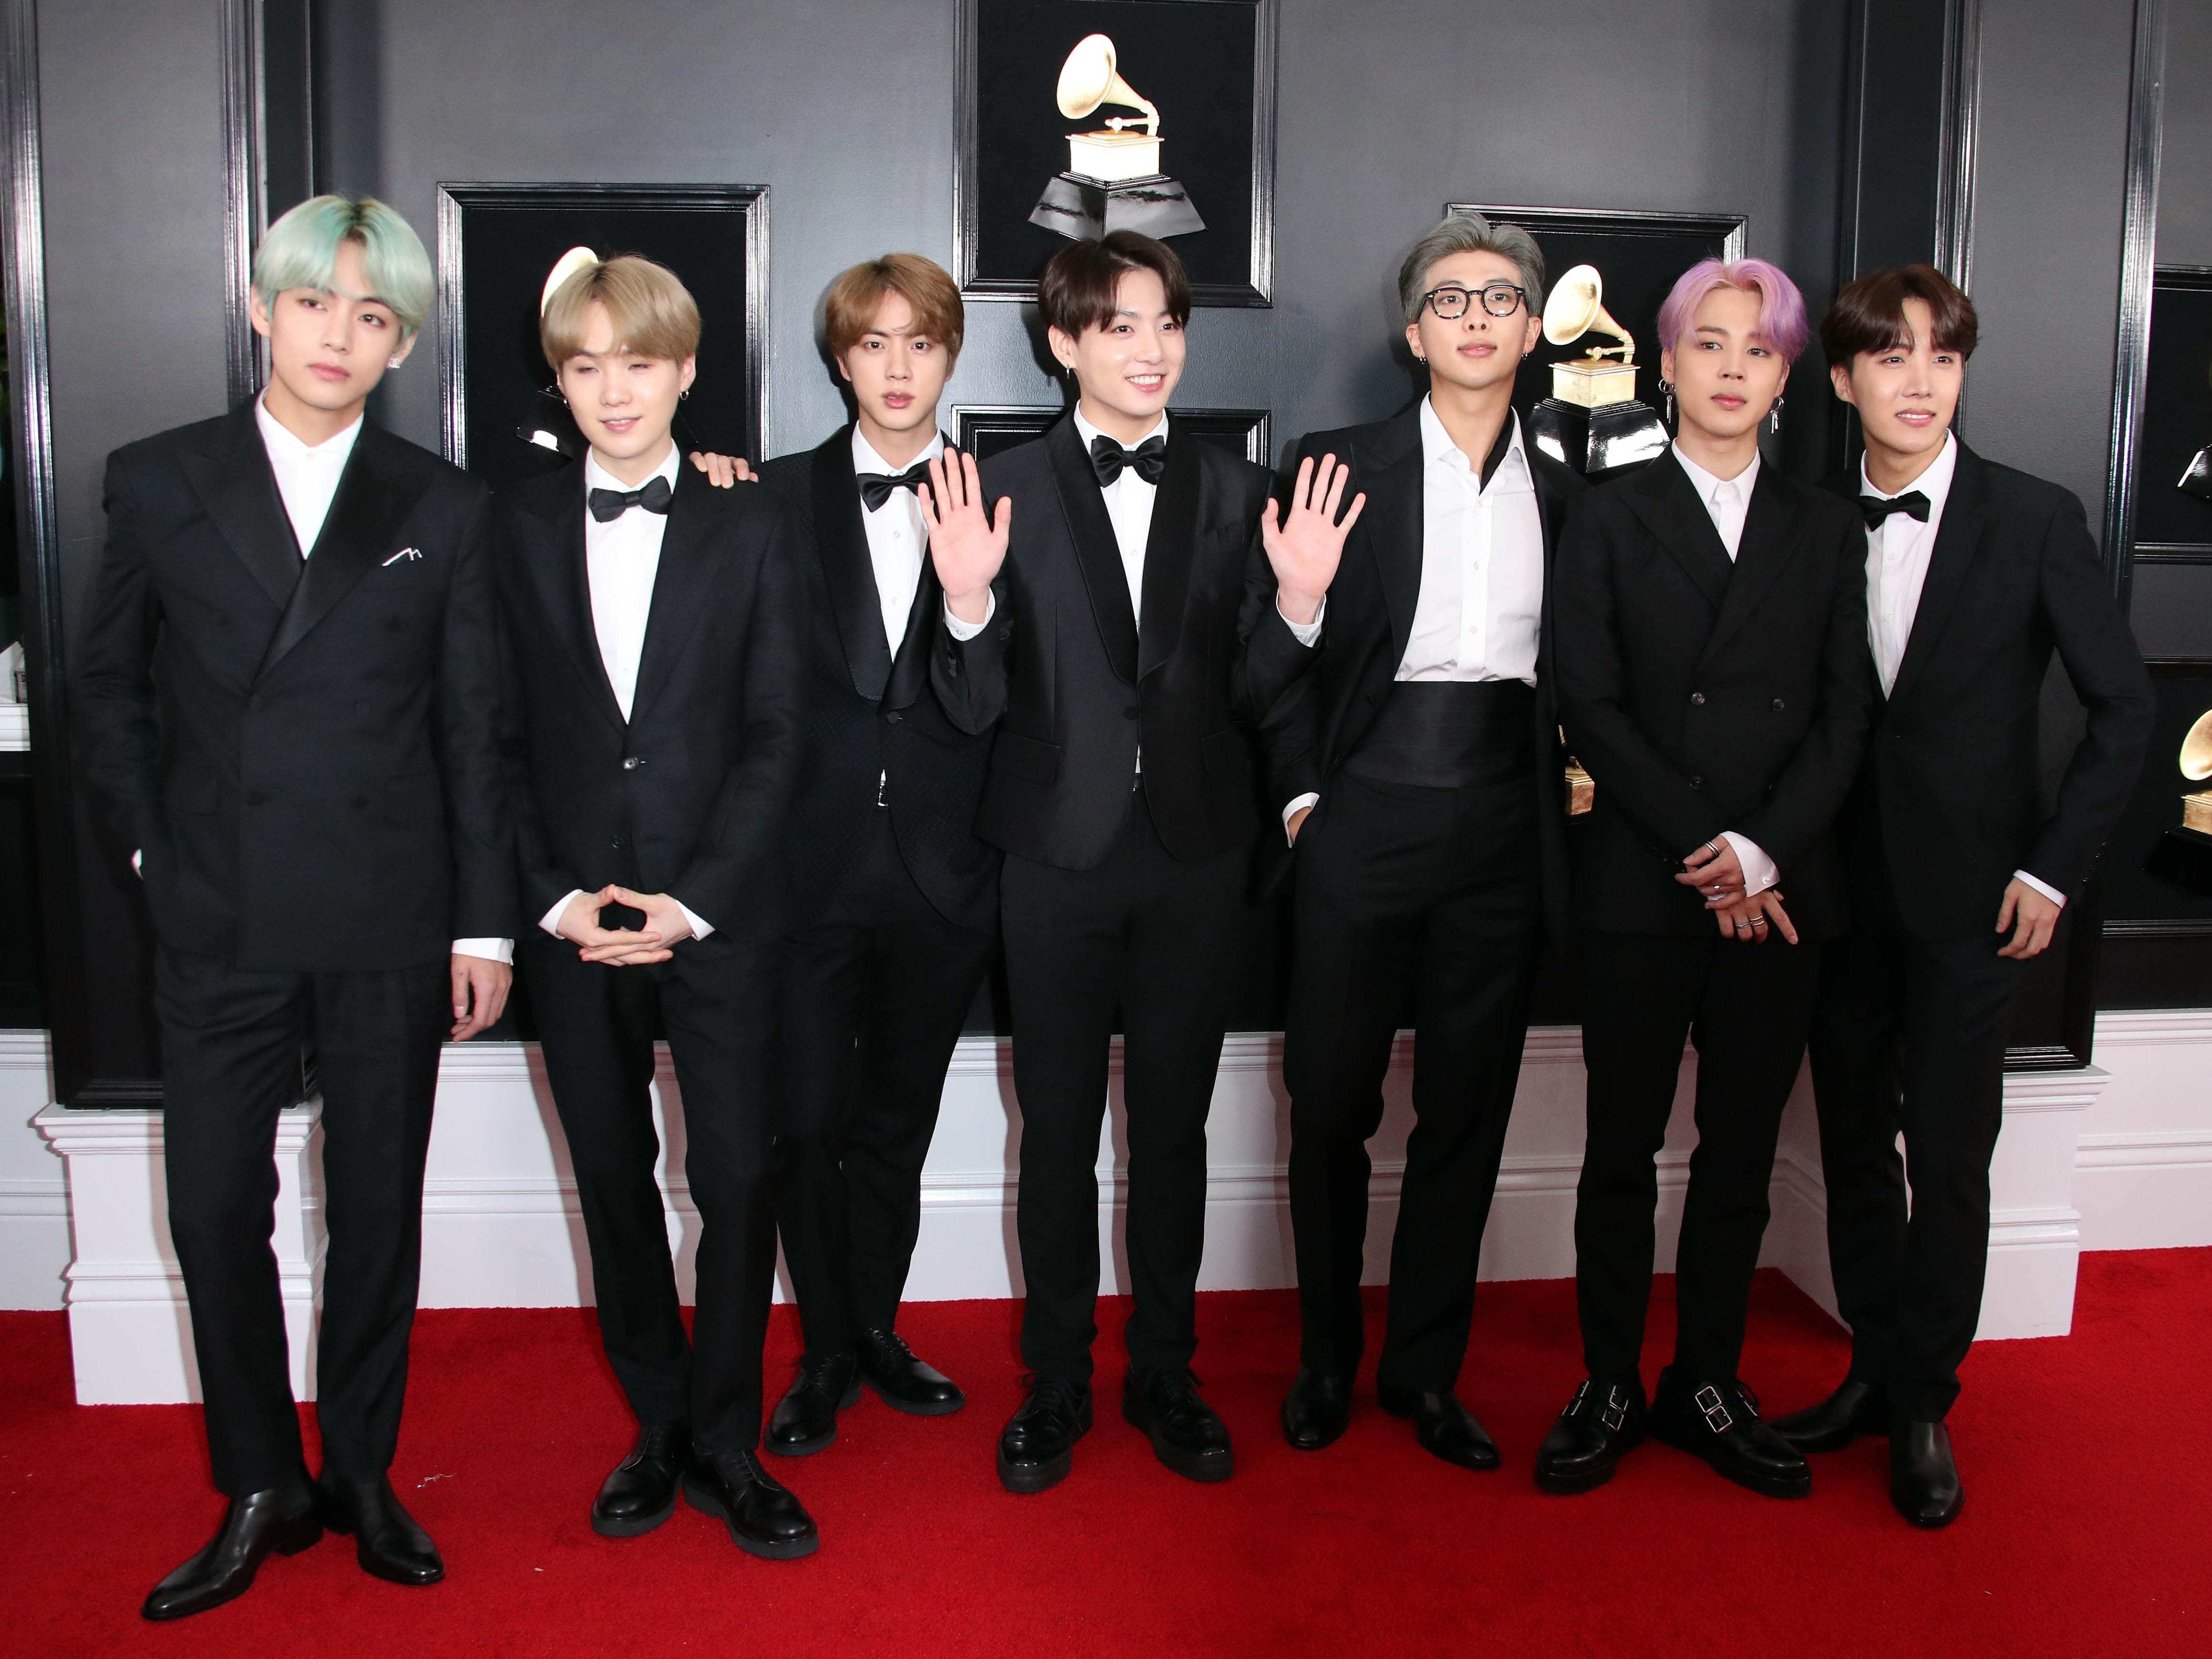 BTS attends the 61st Annual GRAMMY Awards on Feb. 10, 2019 at STAPLES Center in Los Angeles, Calif.